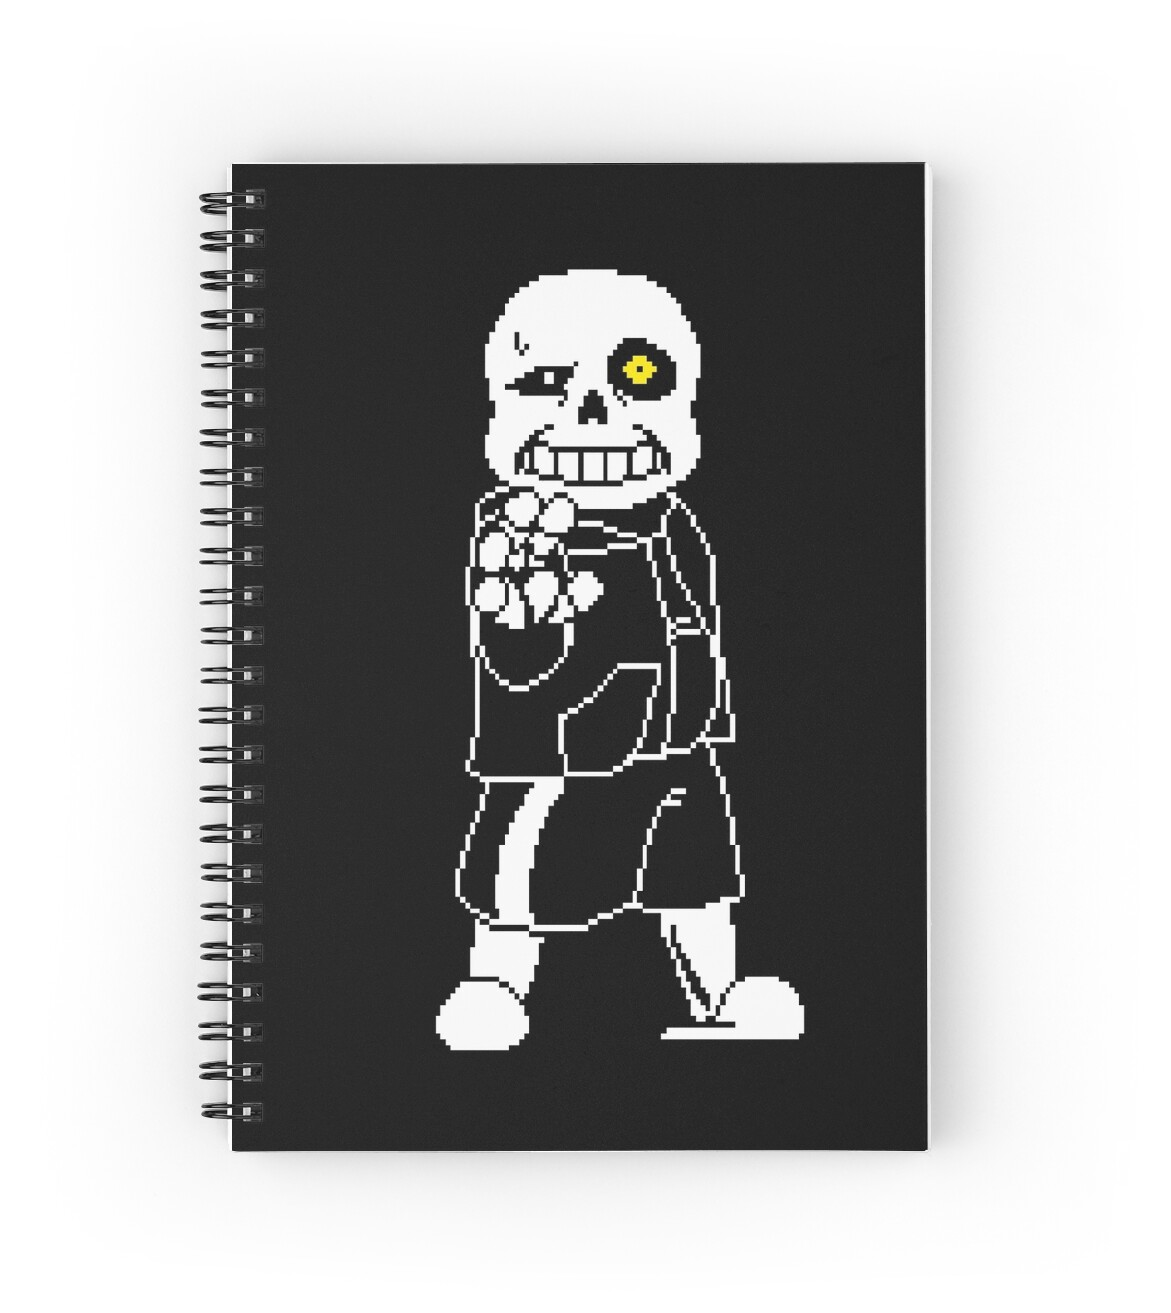 undertale sans after battle fan art spiral notebooks by tim schnapperelle redbubble. Black Bedroom Furniture Sets. Home Design Ideas